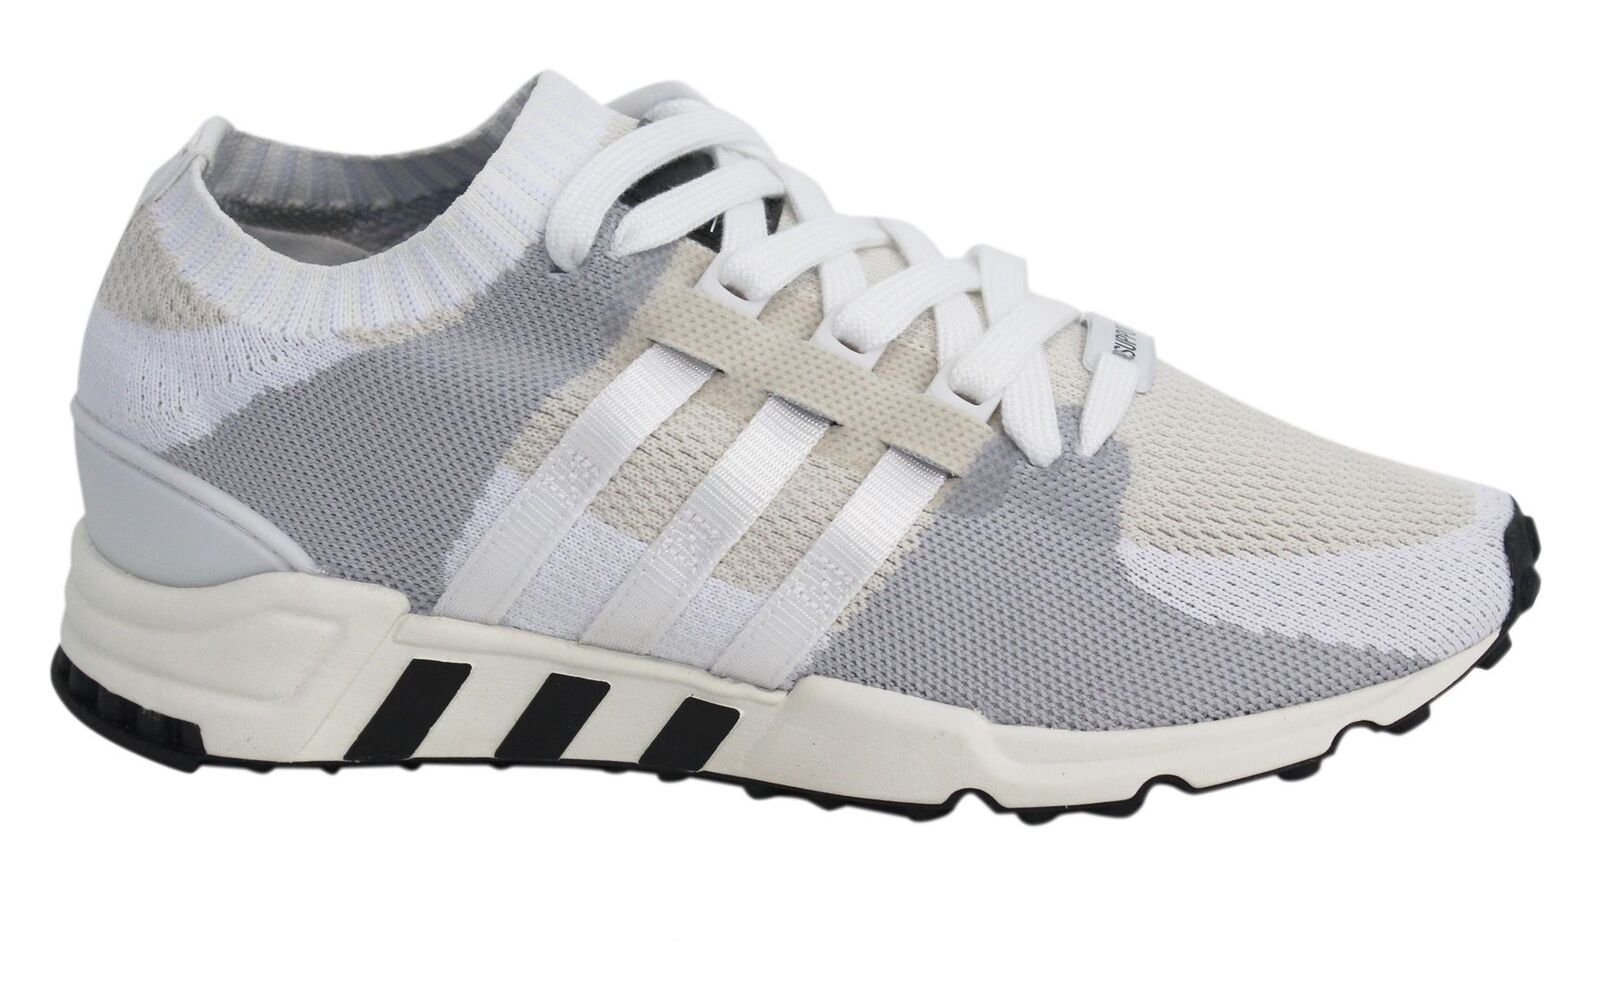 Details about Adidas Eqt Support RF PK Lace Up White Silver Mens Textile Trainers BA7507 D49